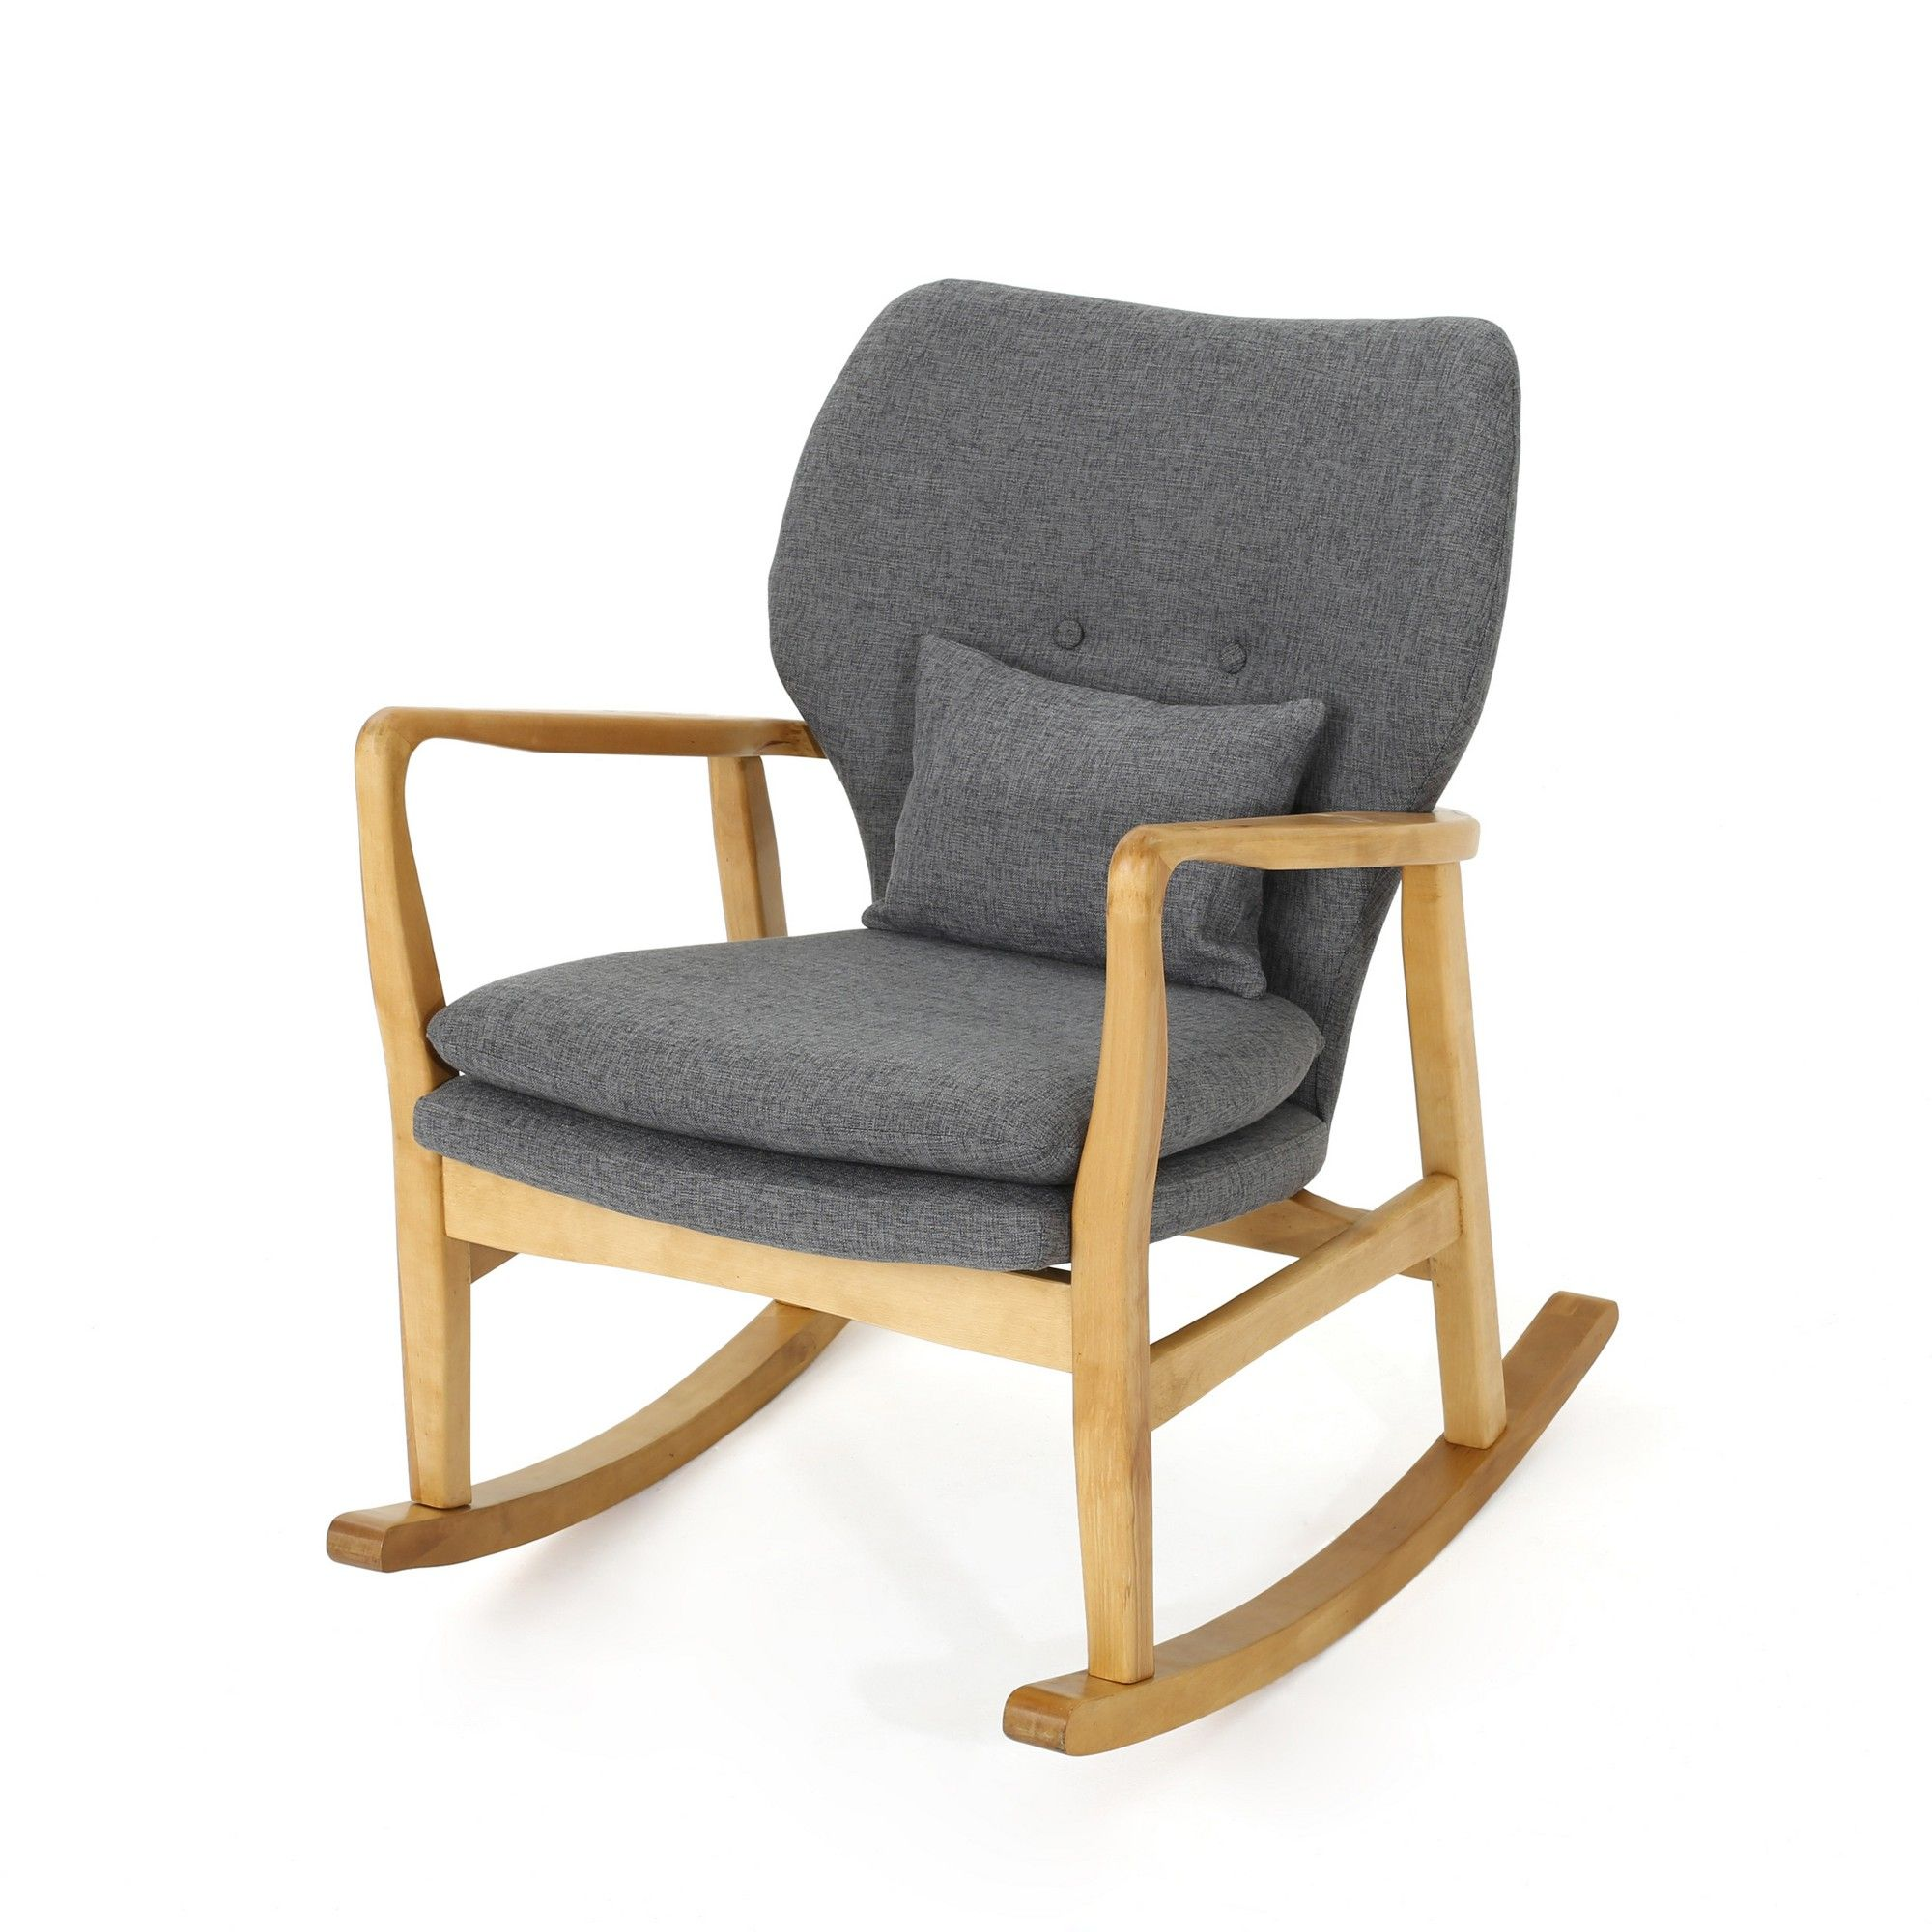 Awe Inspiring Benny Mid Century Modern Rocking Chair Gray Christopher Alphanode Cool Chair Designs And Ideas Alphanodeonline